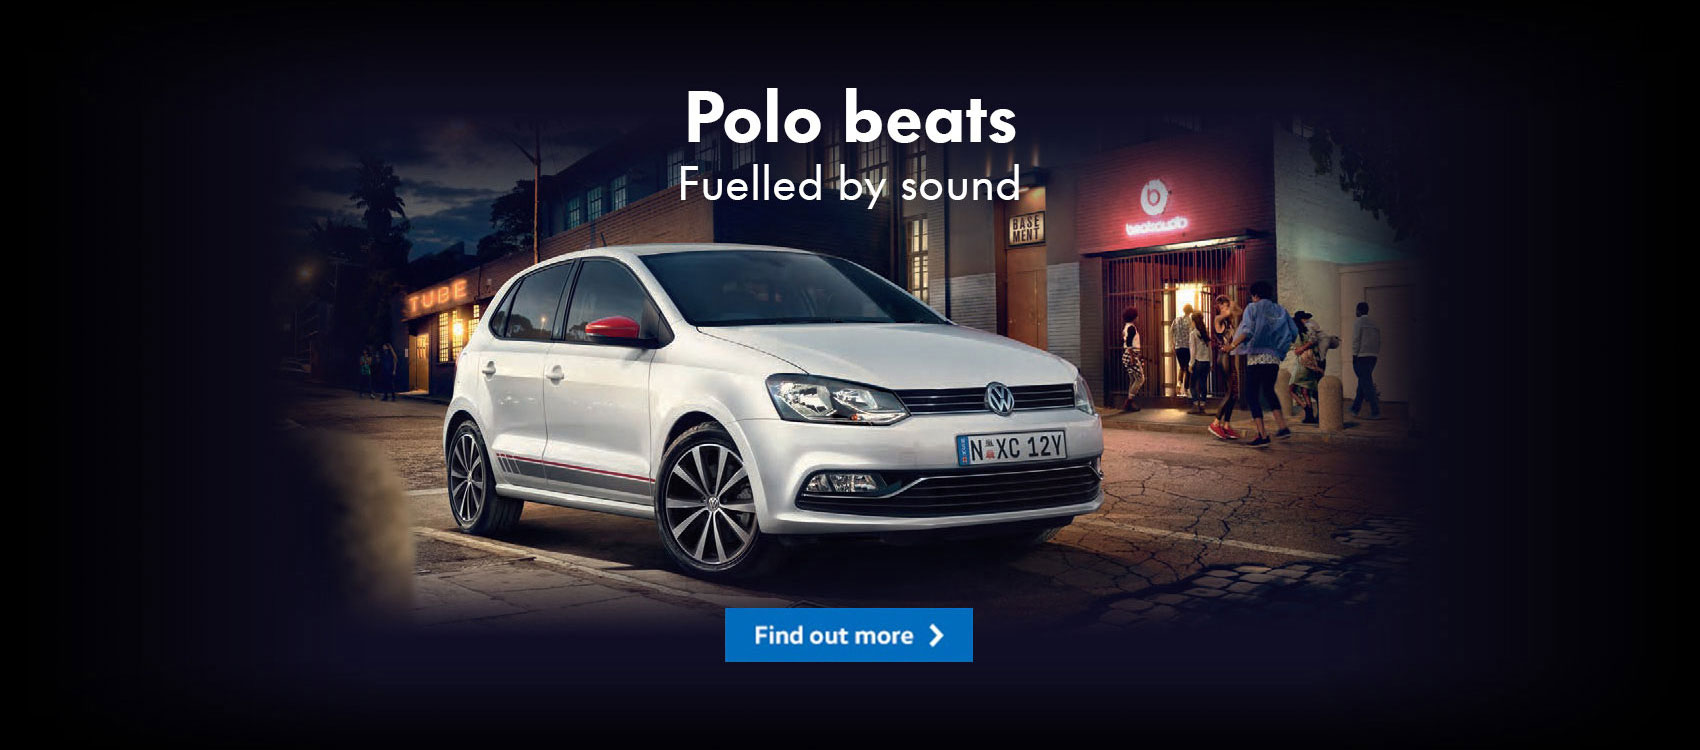 Volkswagen Polo Beats, fuelled by sound. See NMG VW, your local Brisbane dealer.